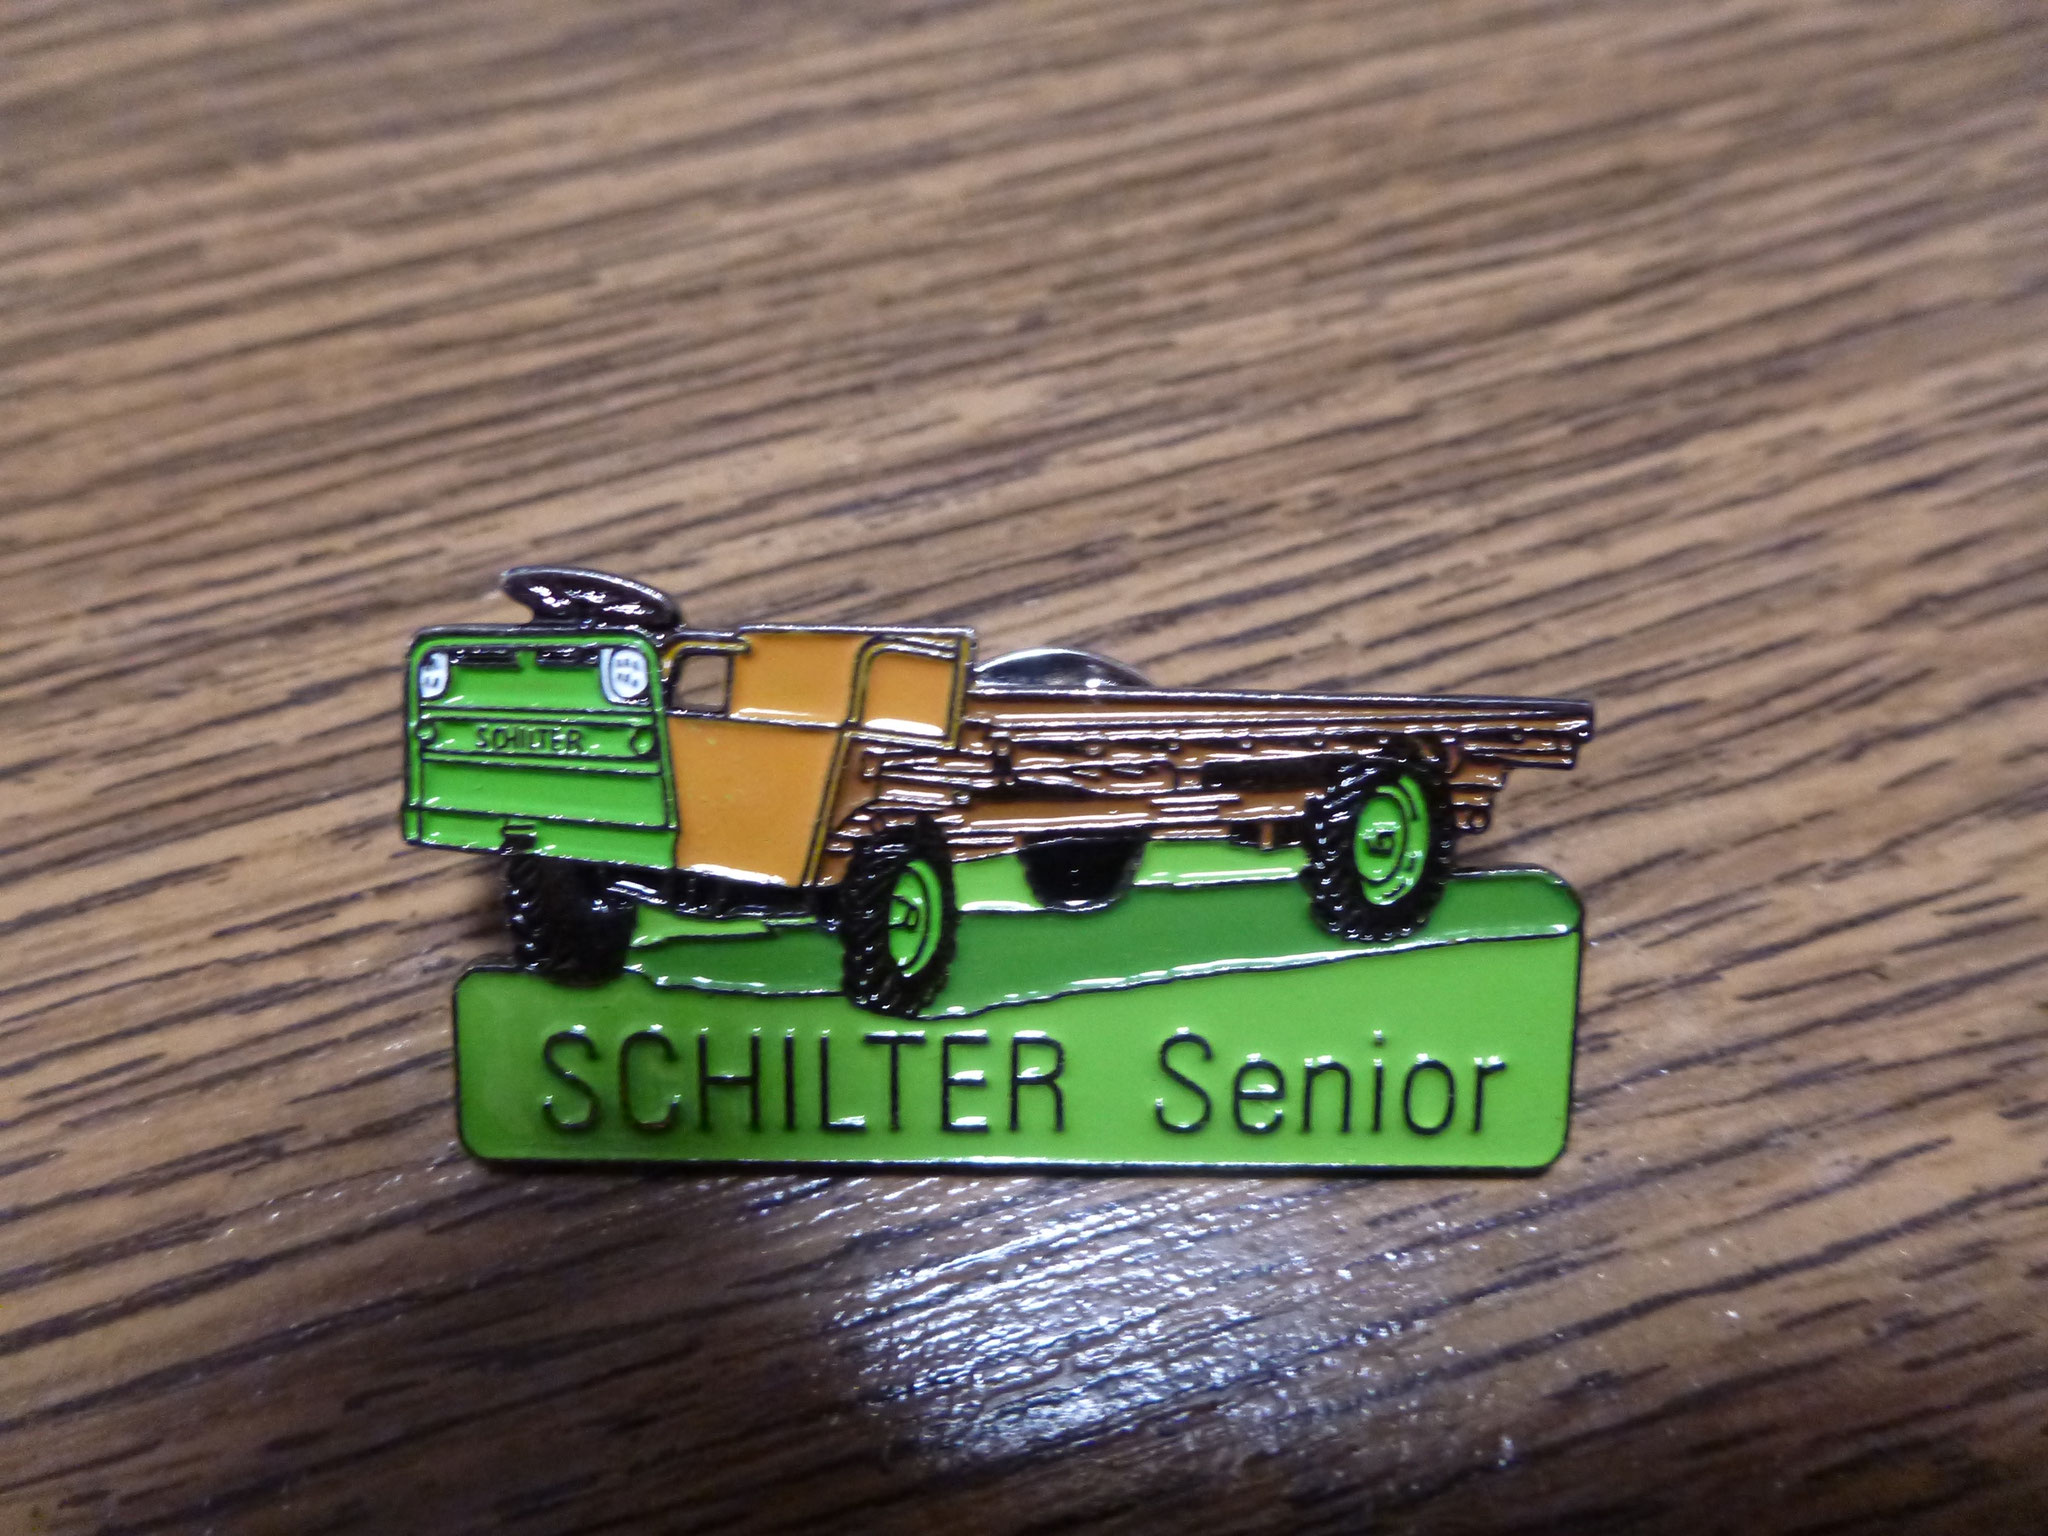 Pin Schilter senior